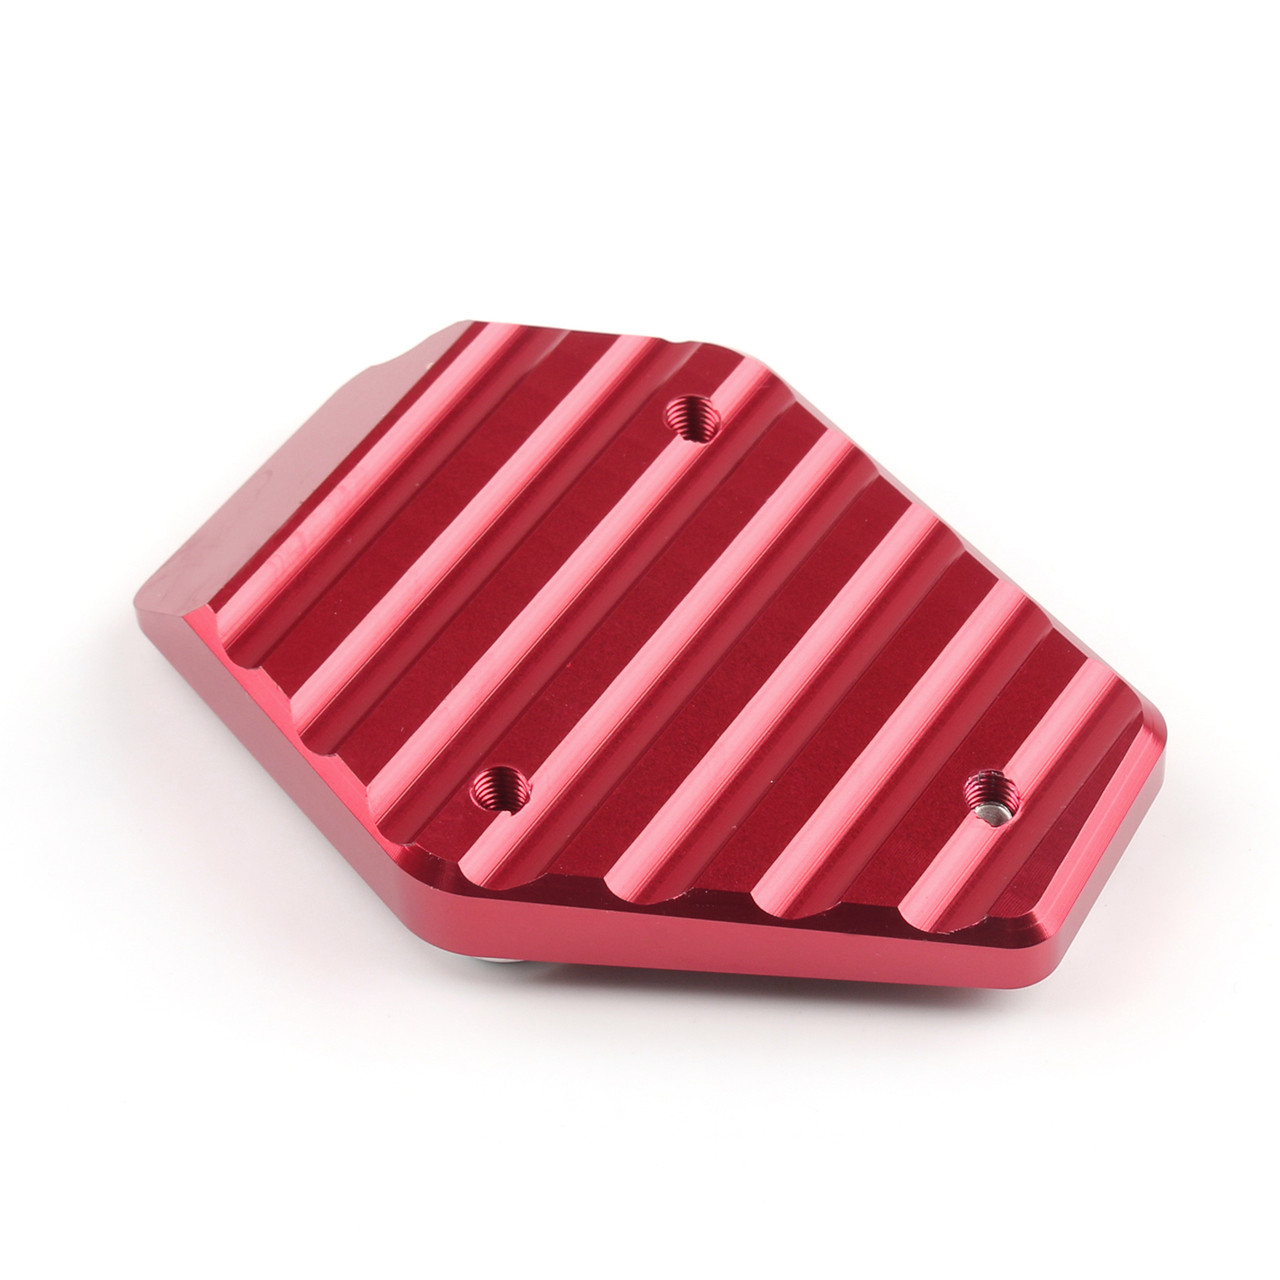 Kickstand Foot Side Stand Enlarger Plate Pad Ducati Monster 795 796 821 1200, Red